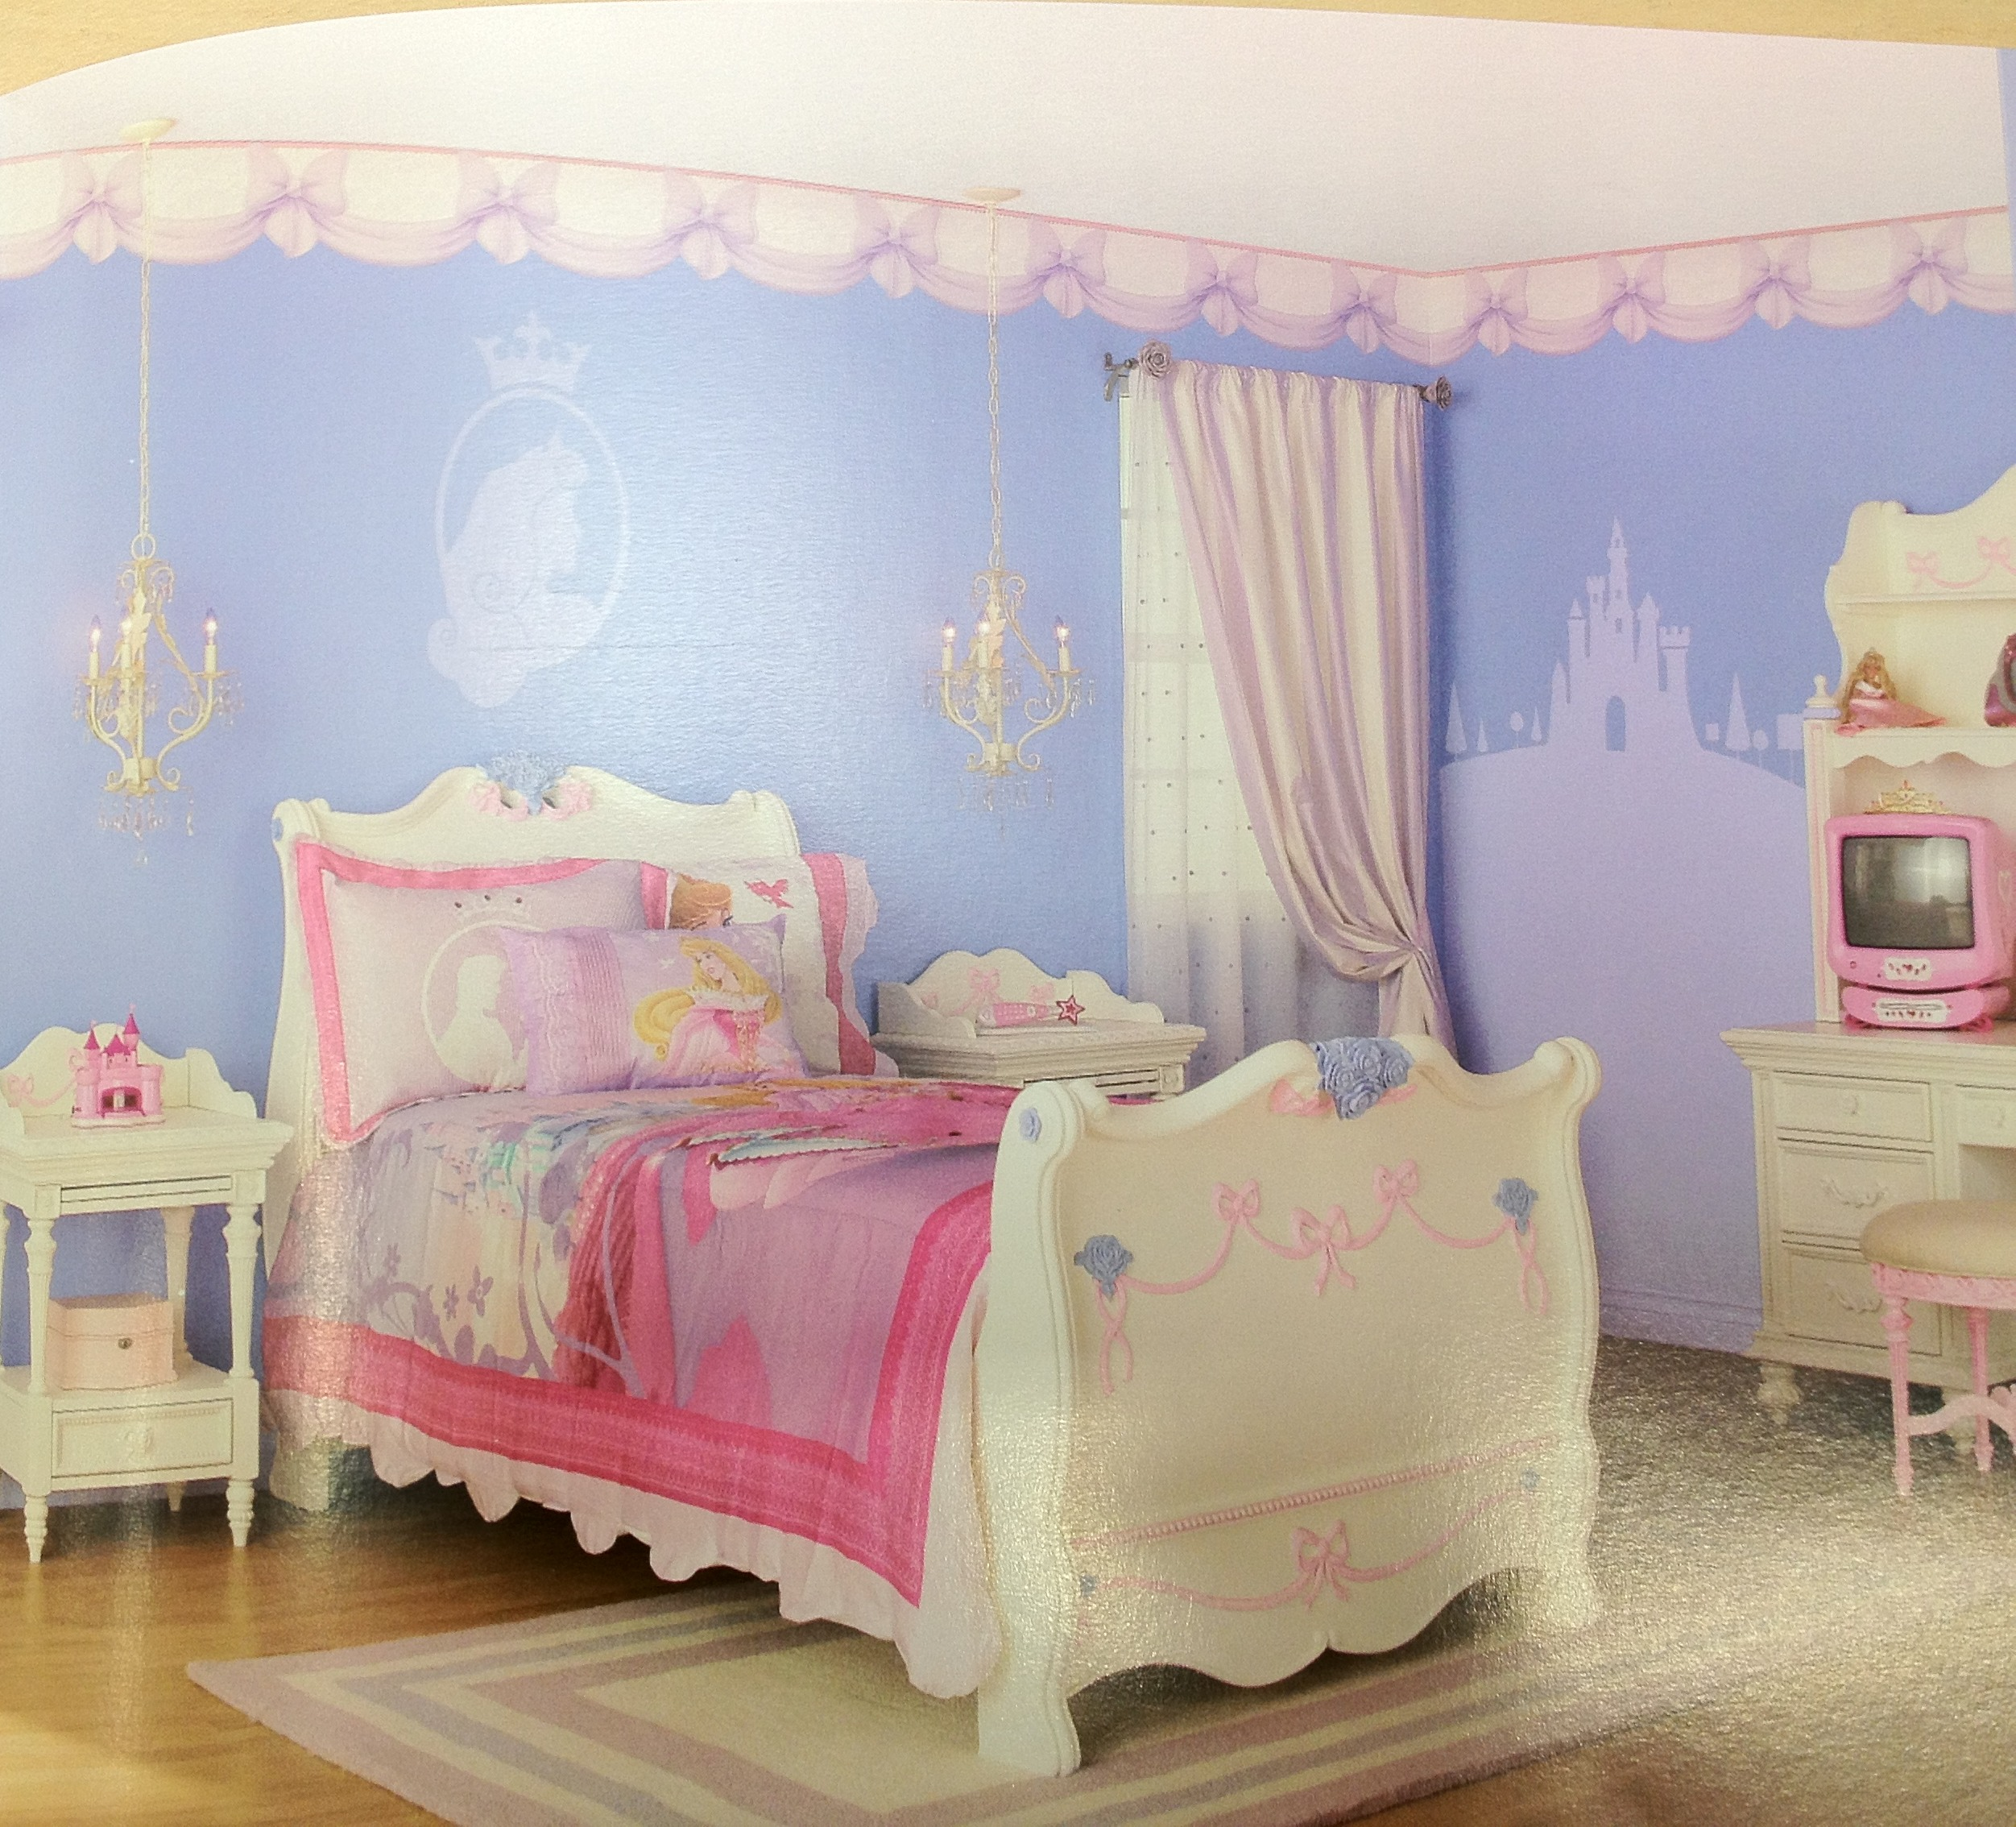 Lifestyle branding and the disney princess megabrand dr for Sleeping room decoration